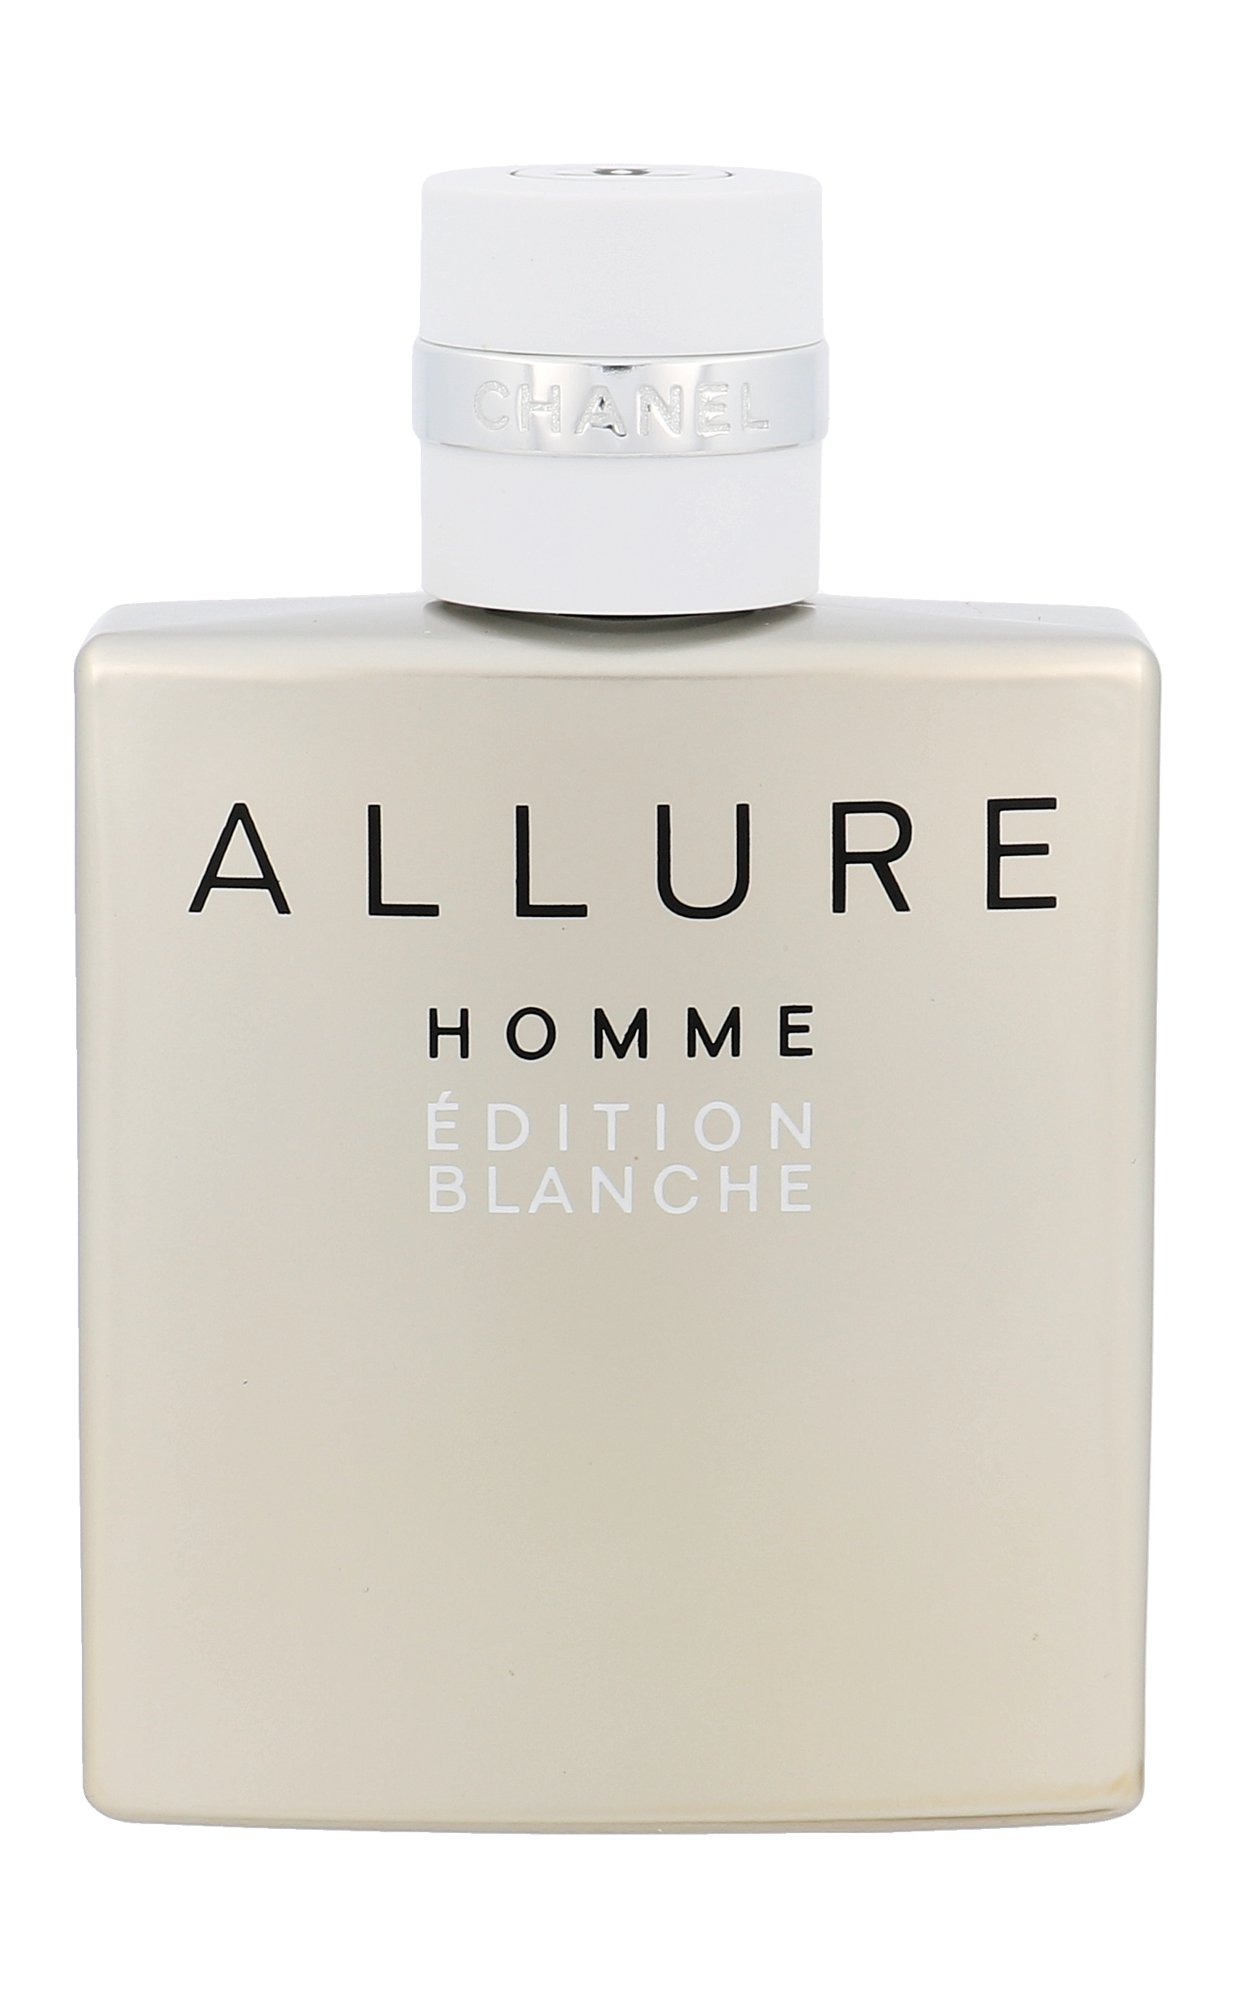 Chanel Allure Homme Edition Blanche, edp 50ml